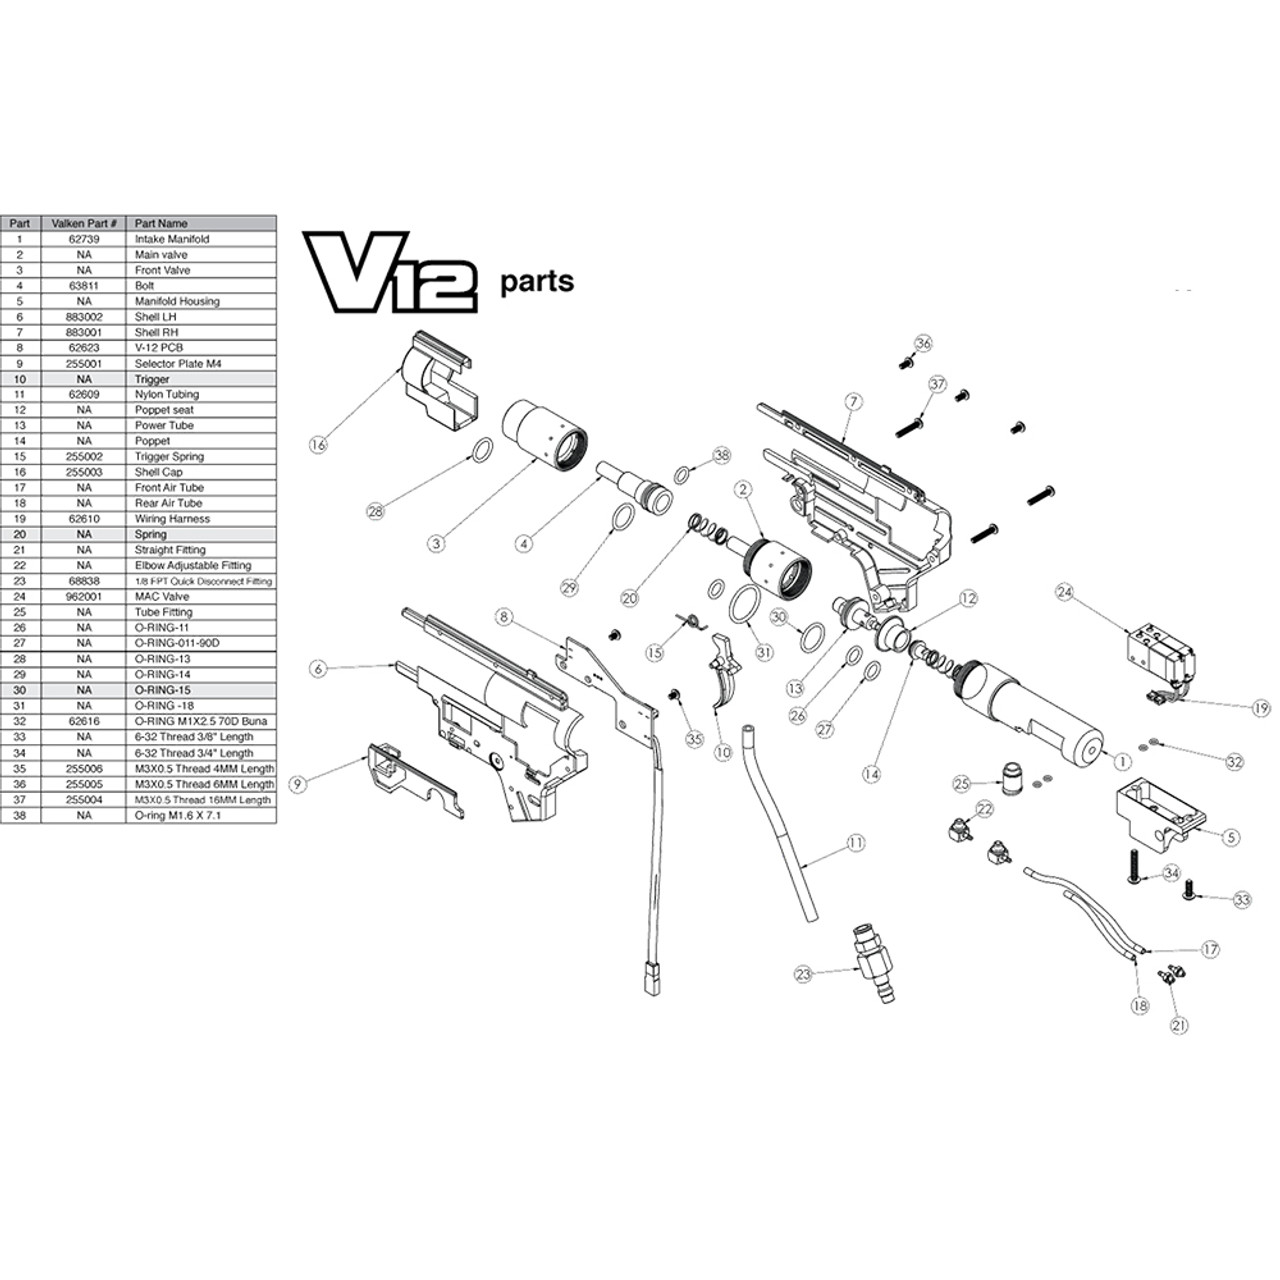 VALKEN V12 HPA ENGINE DIAGRAM low price of $0